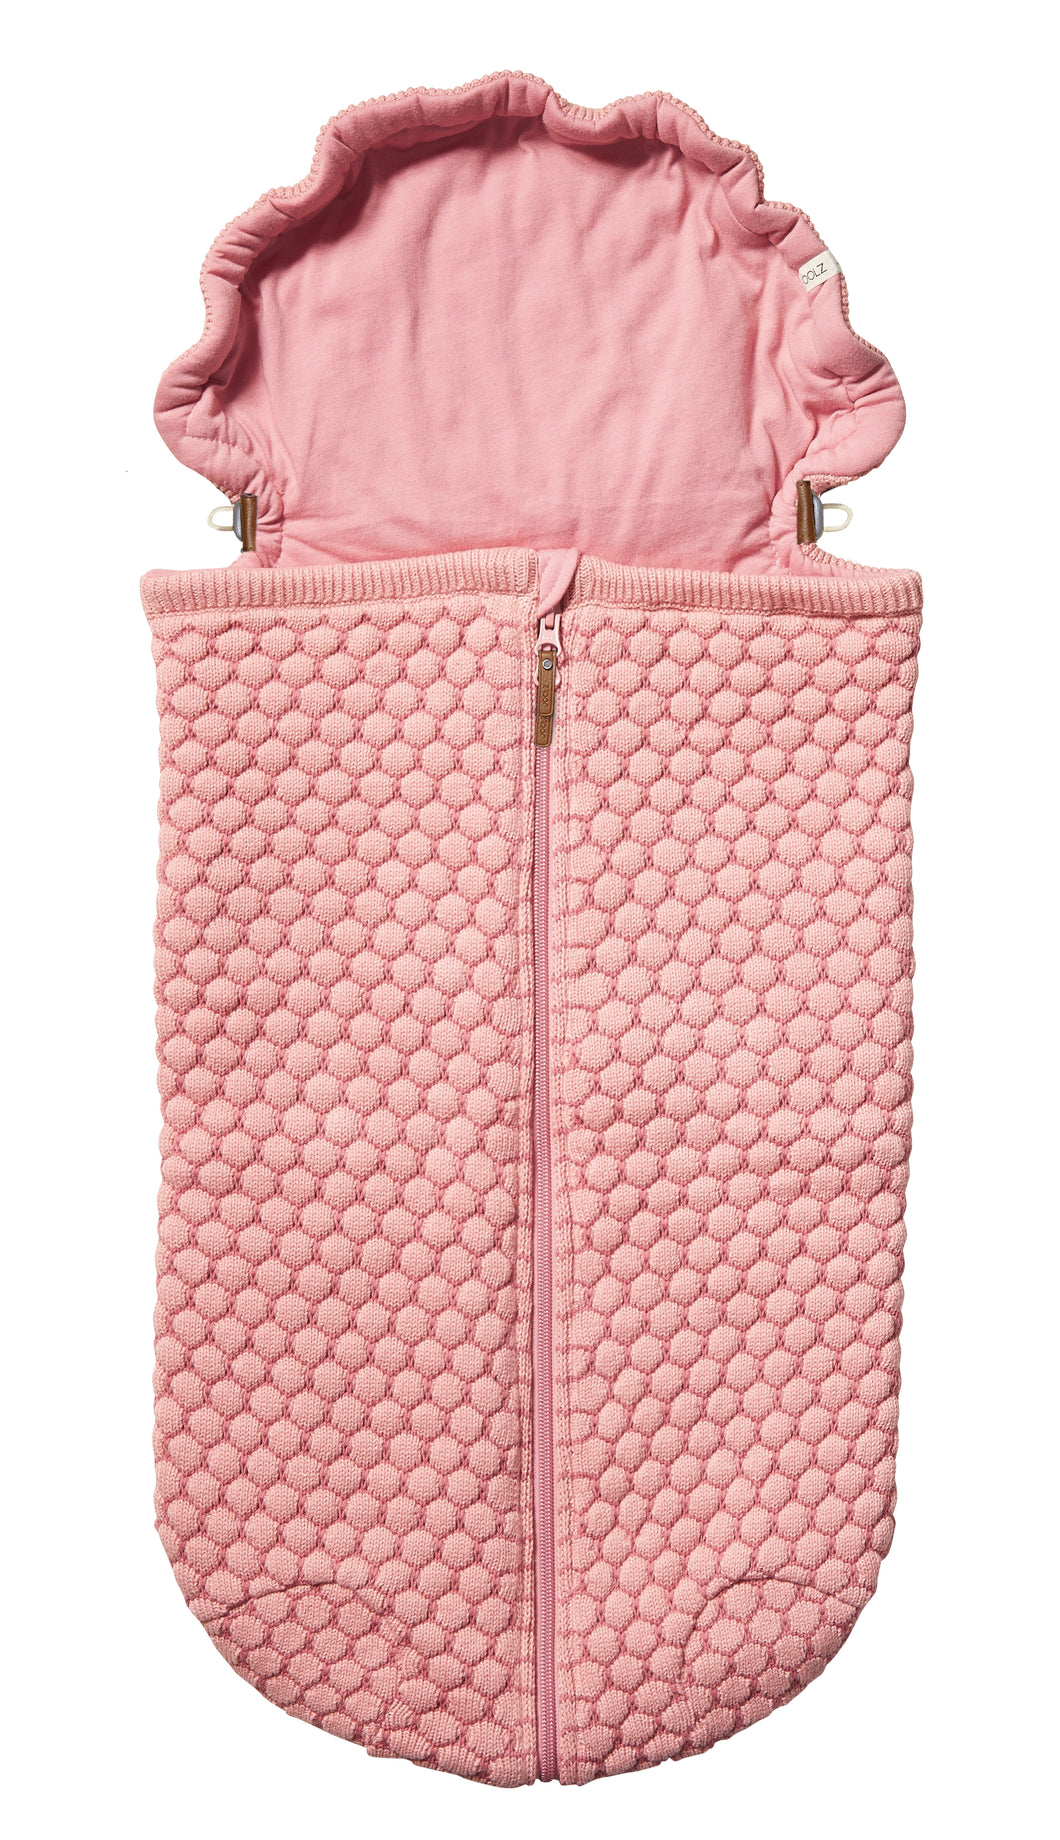 Joolz ESSENTIALS BABY NEST (Pink)